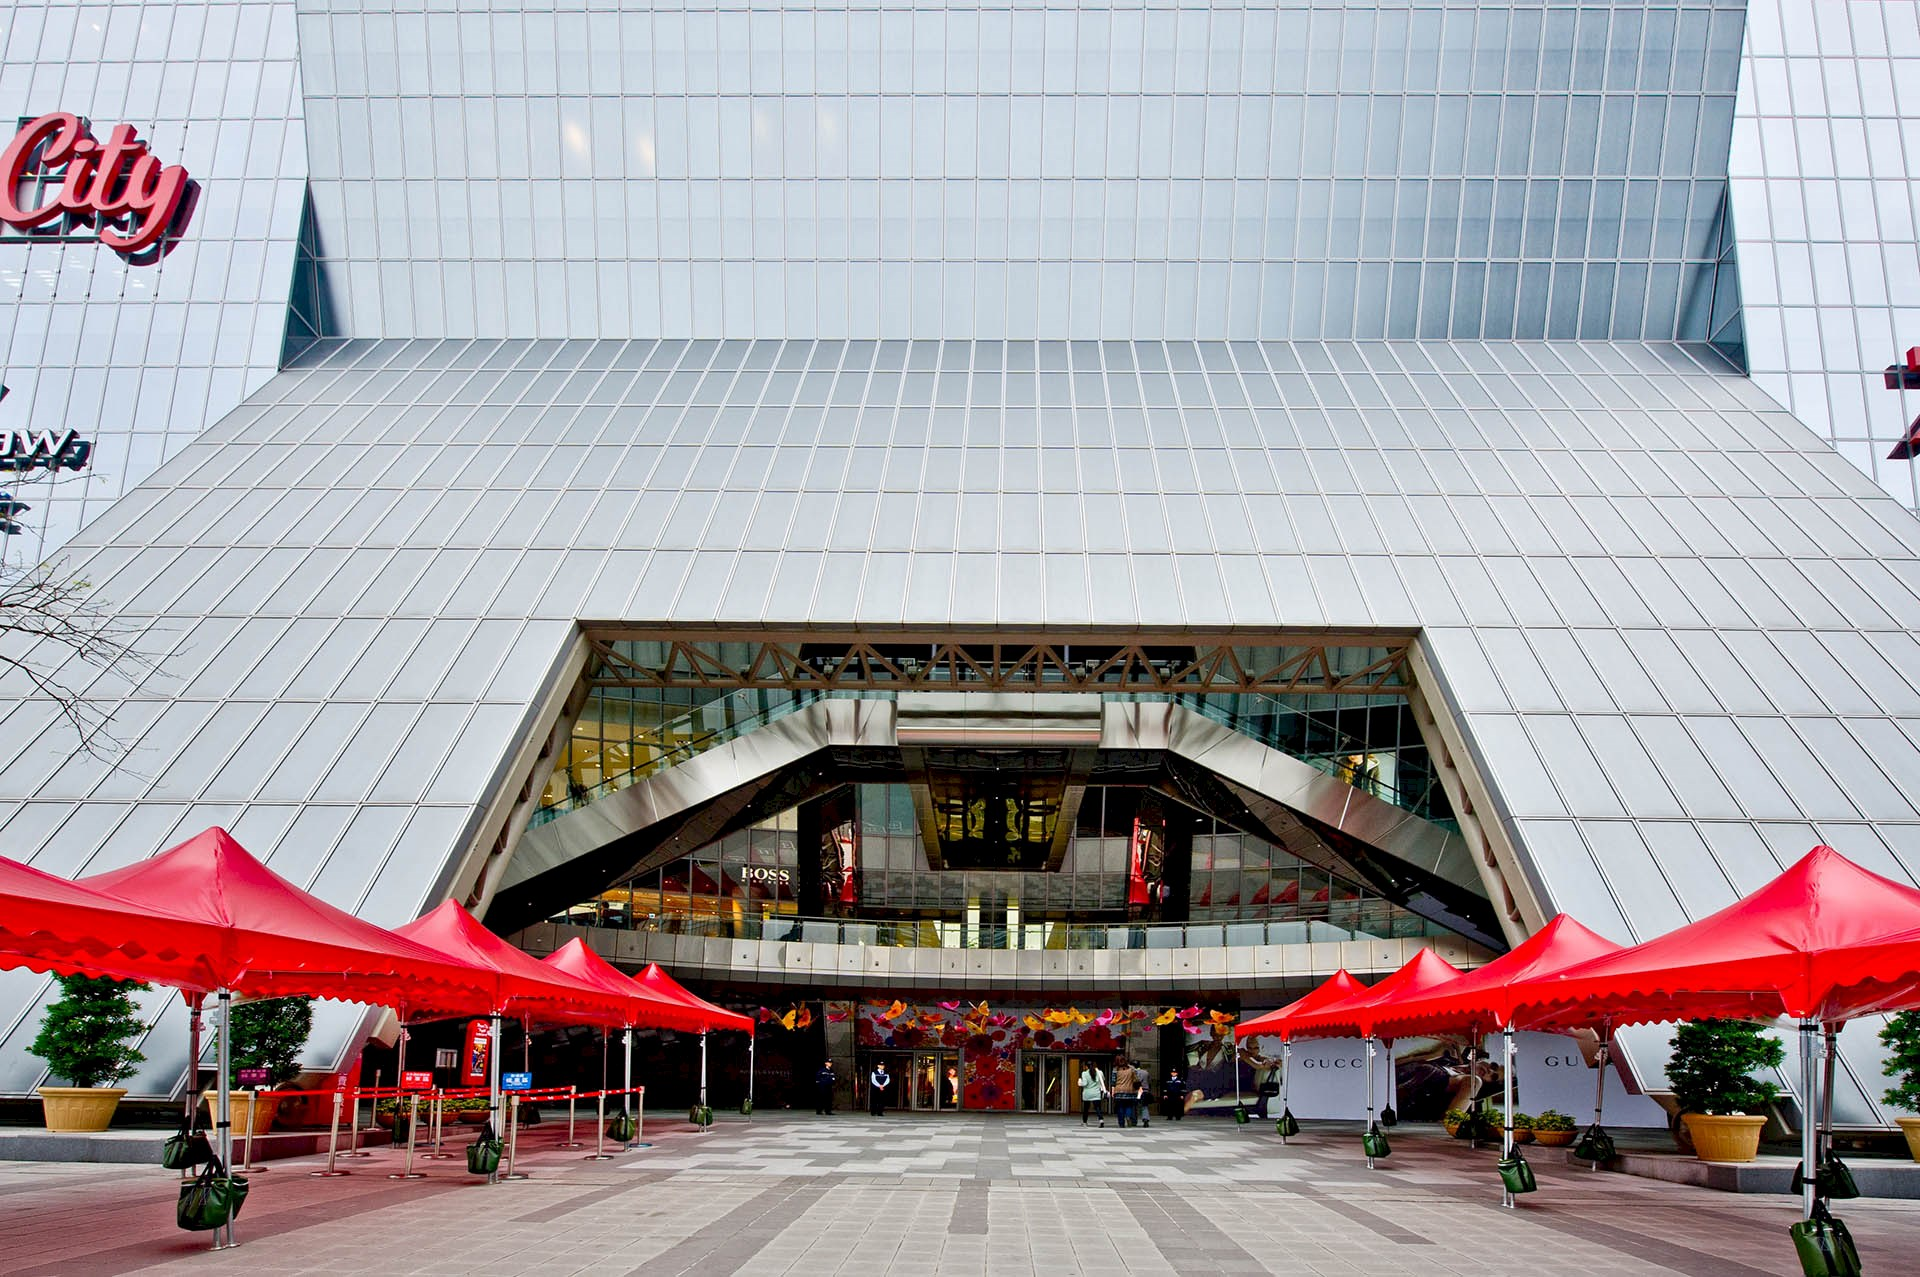 Benoy's First Taiwan Project Megacity Opens